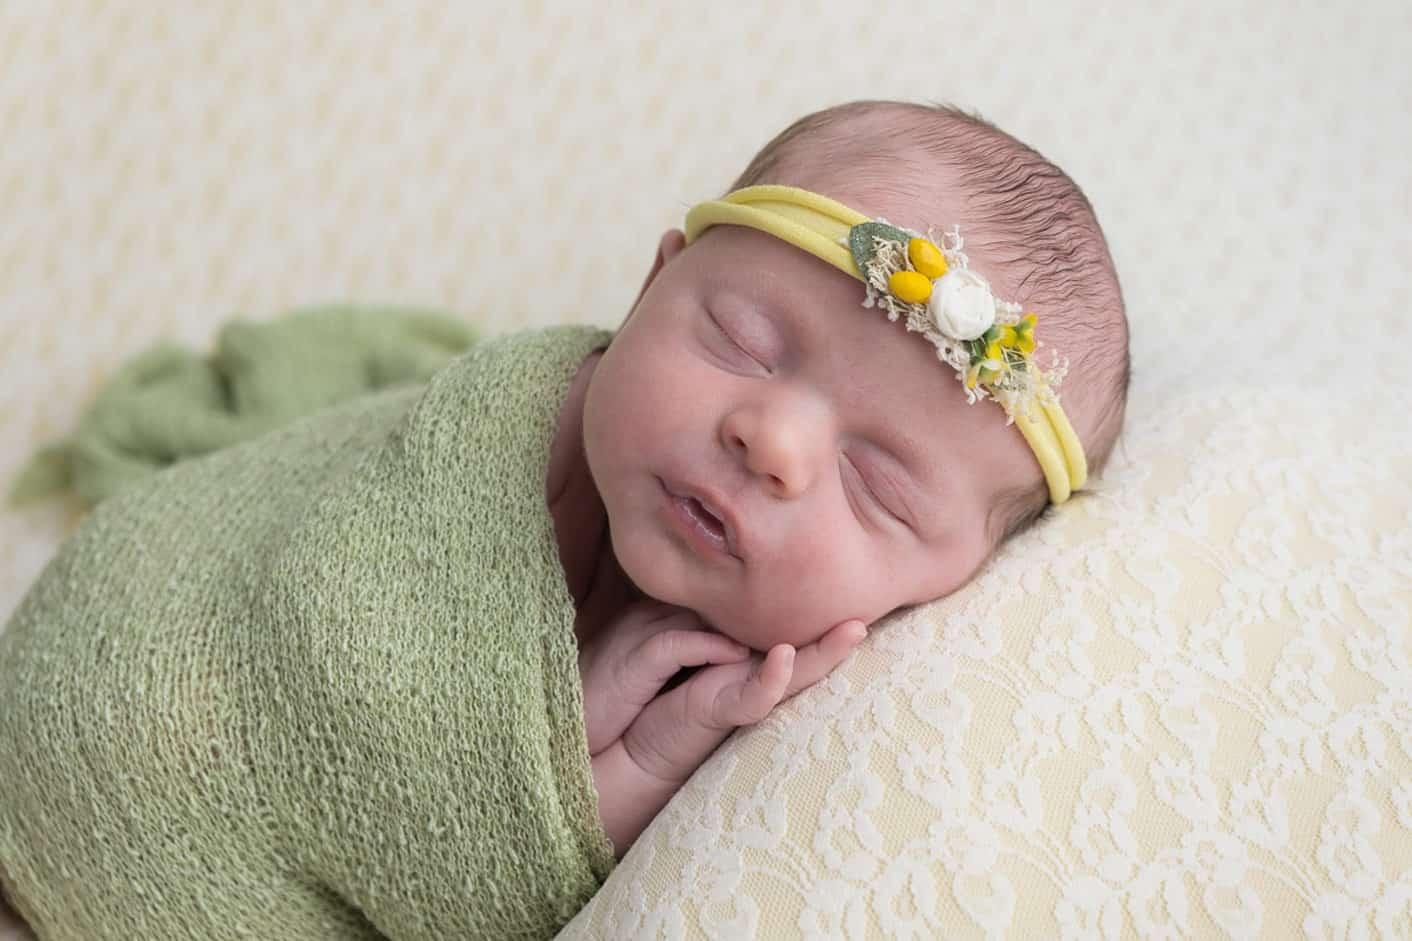 Newborn photos at home vs a newborn photoshoot in a photography studio. 4